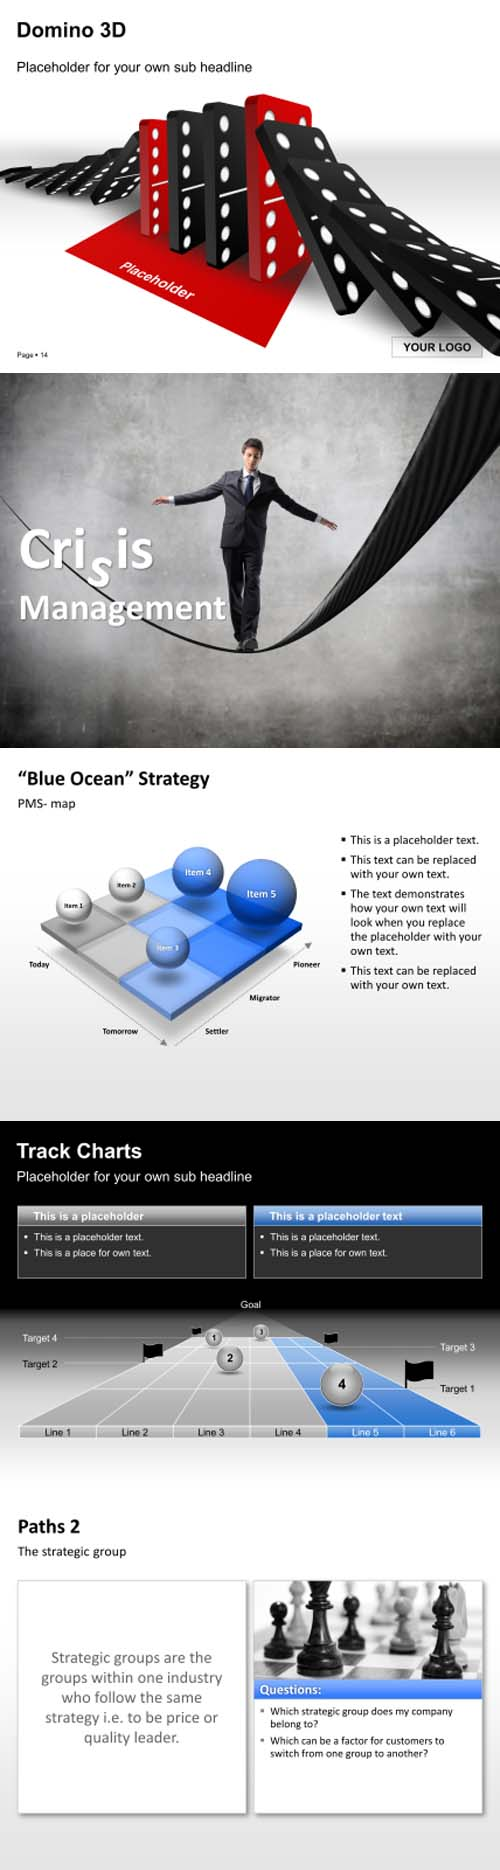 Attractive powerpoint templates for strategy managemet in business attractive powerpoint templates for strategy managemet in business presentations business powerpoint toneelgroepblik Gallery